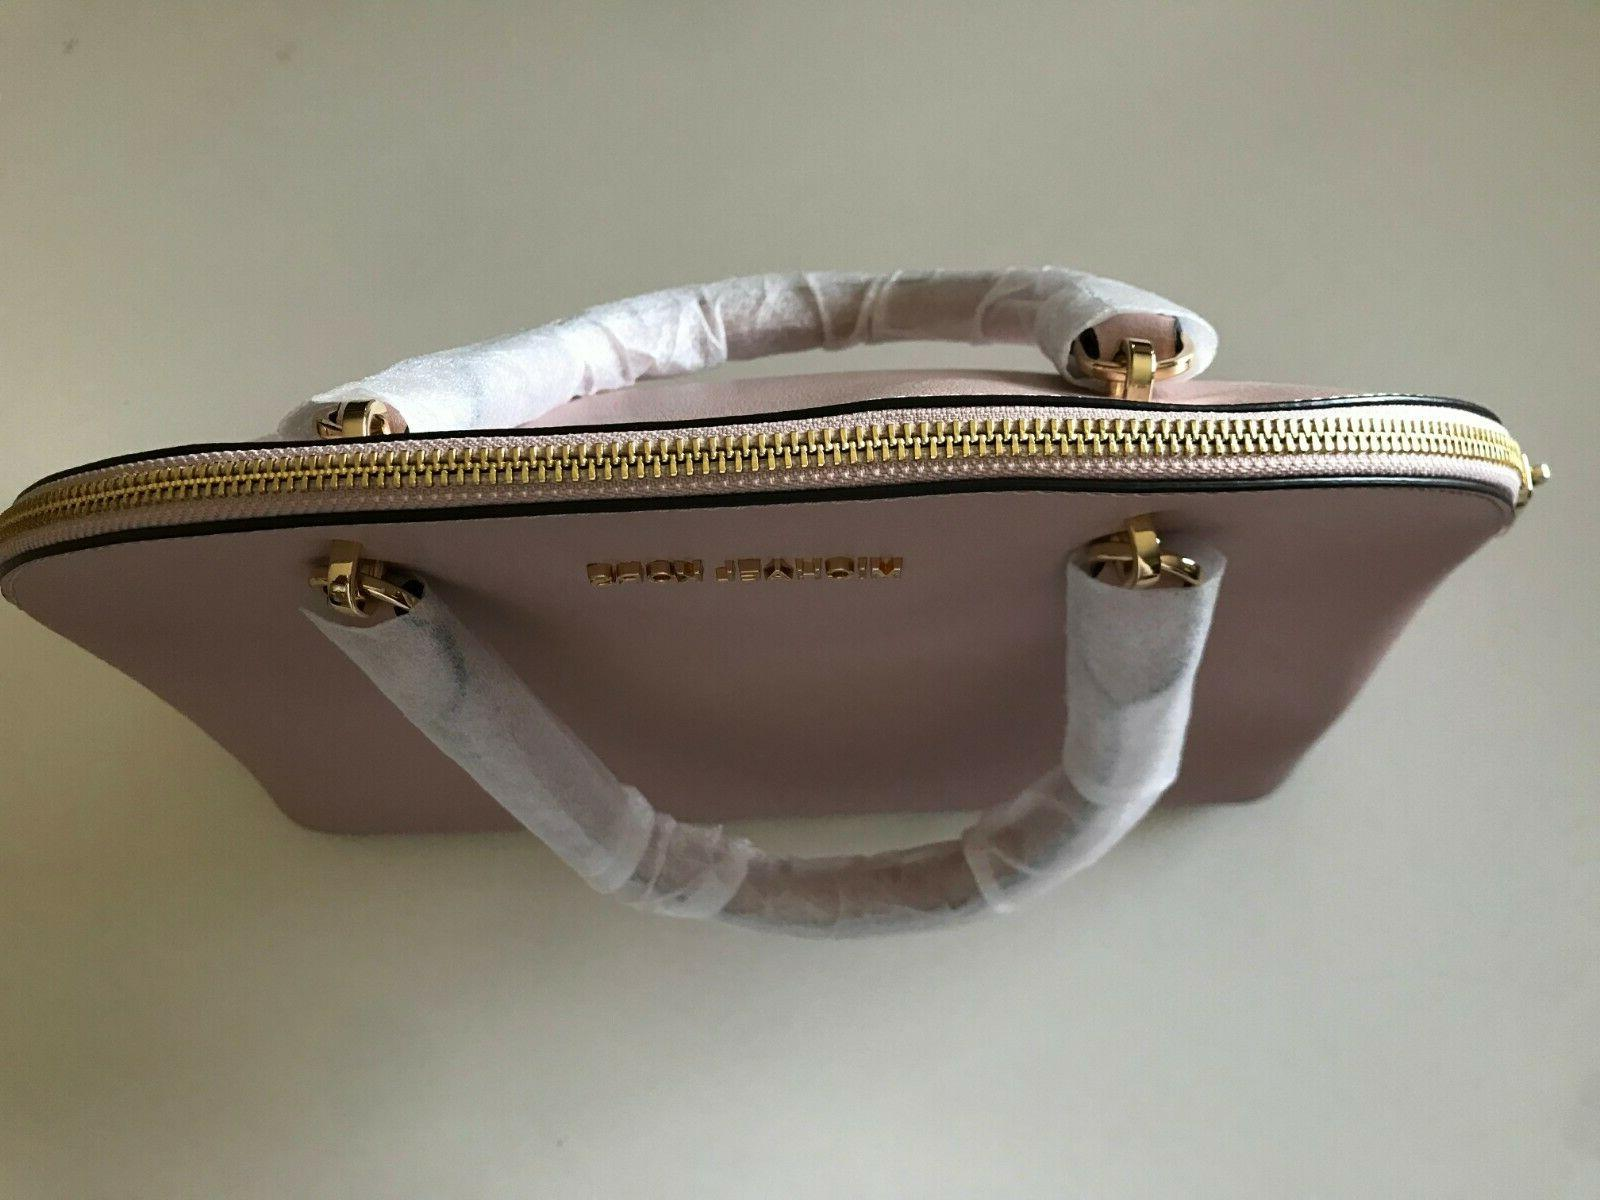 NEW Michael Kors Emmy Dome Leather Satchel BLOSSOM $378